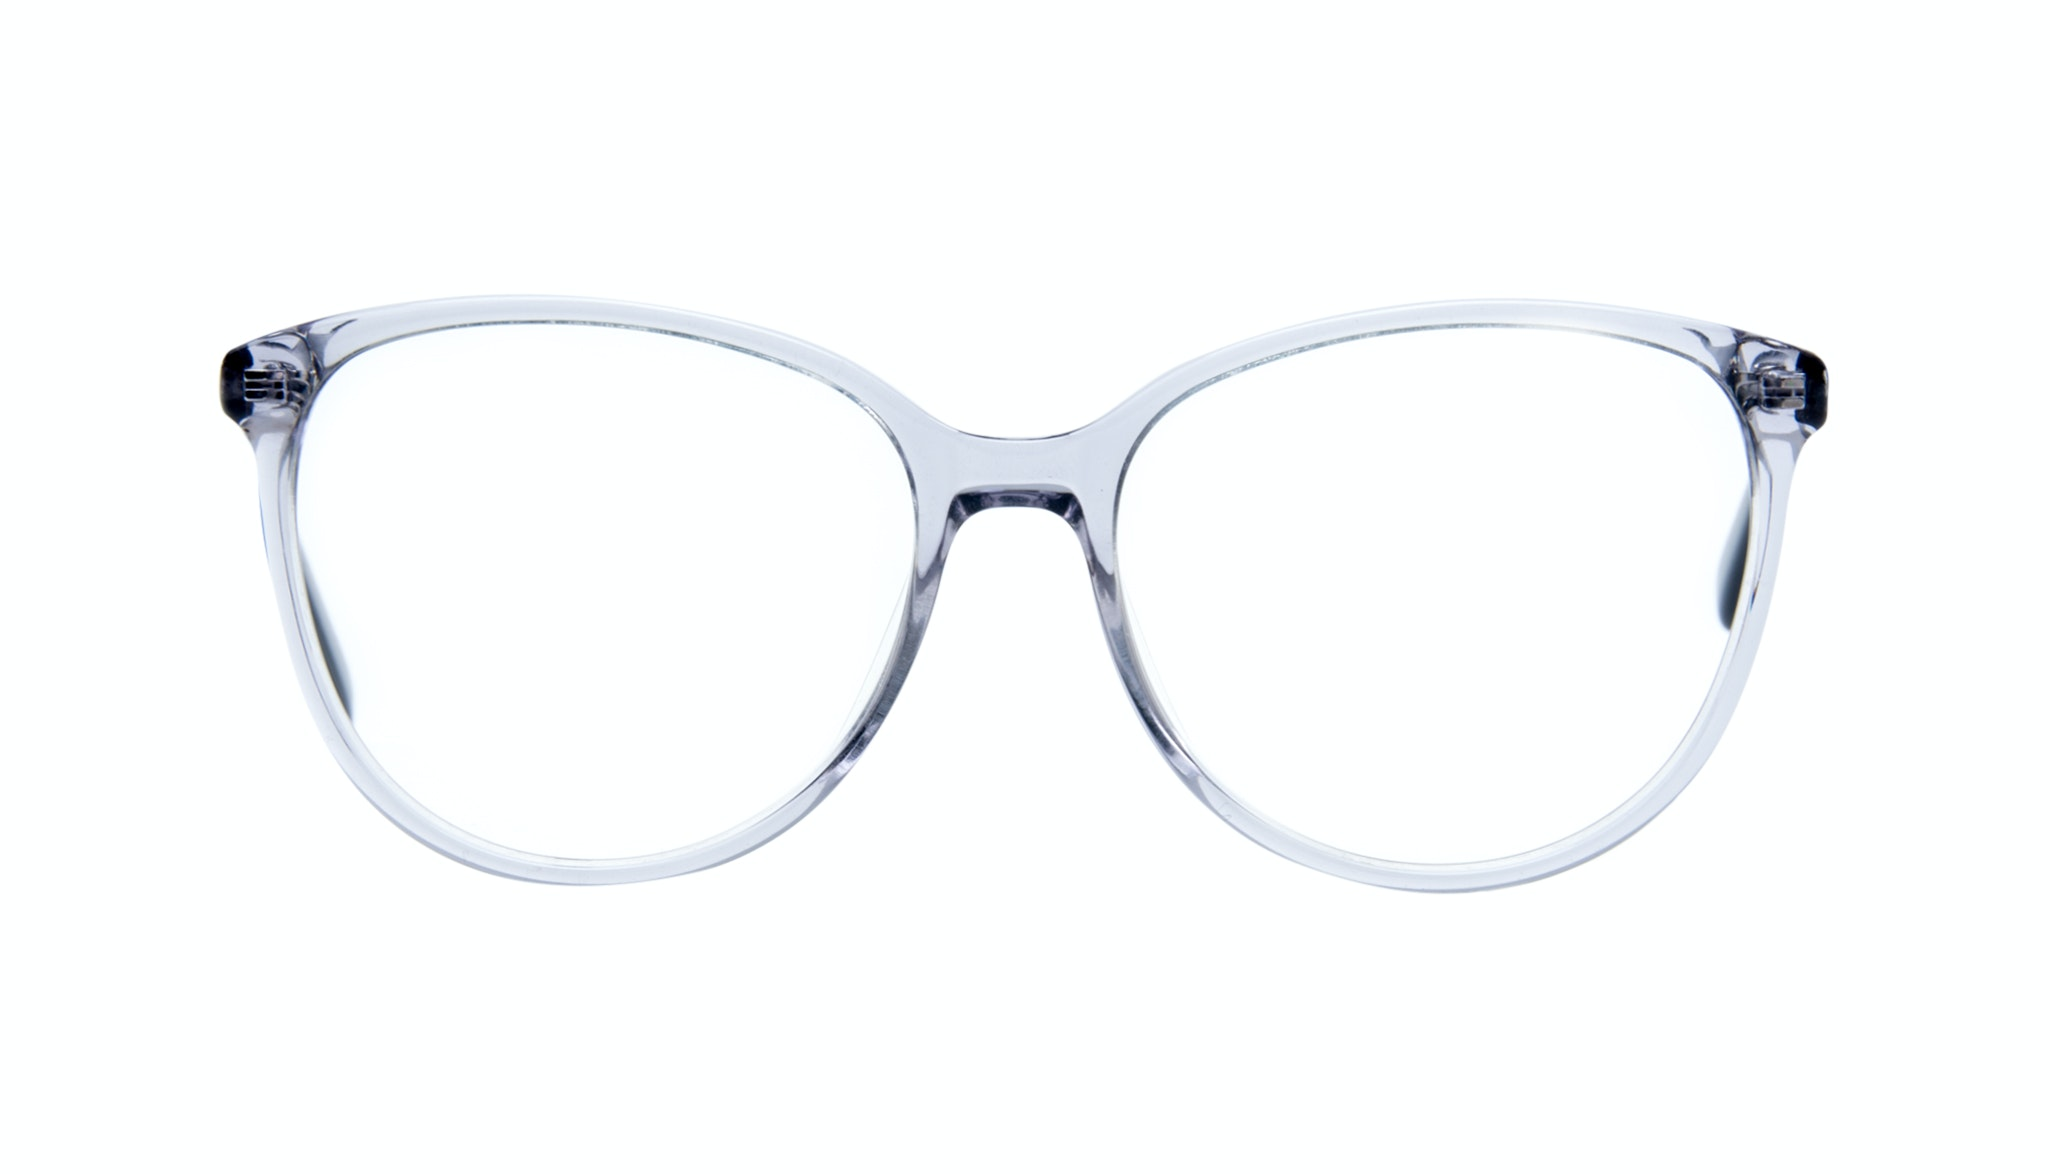 Affordable Fashion Glasses Cat Eye Round Eyeglasses Women Imagine Grey Metal Front